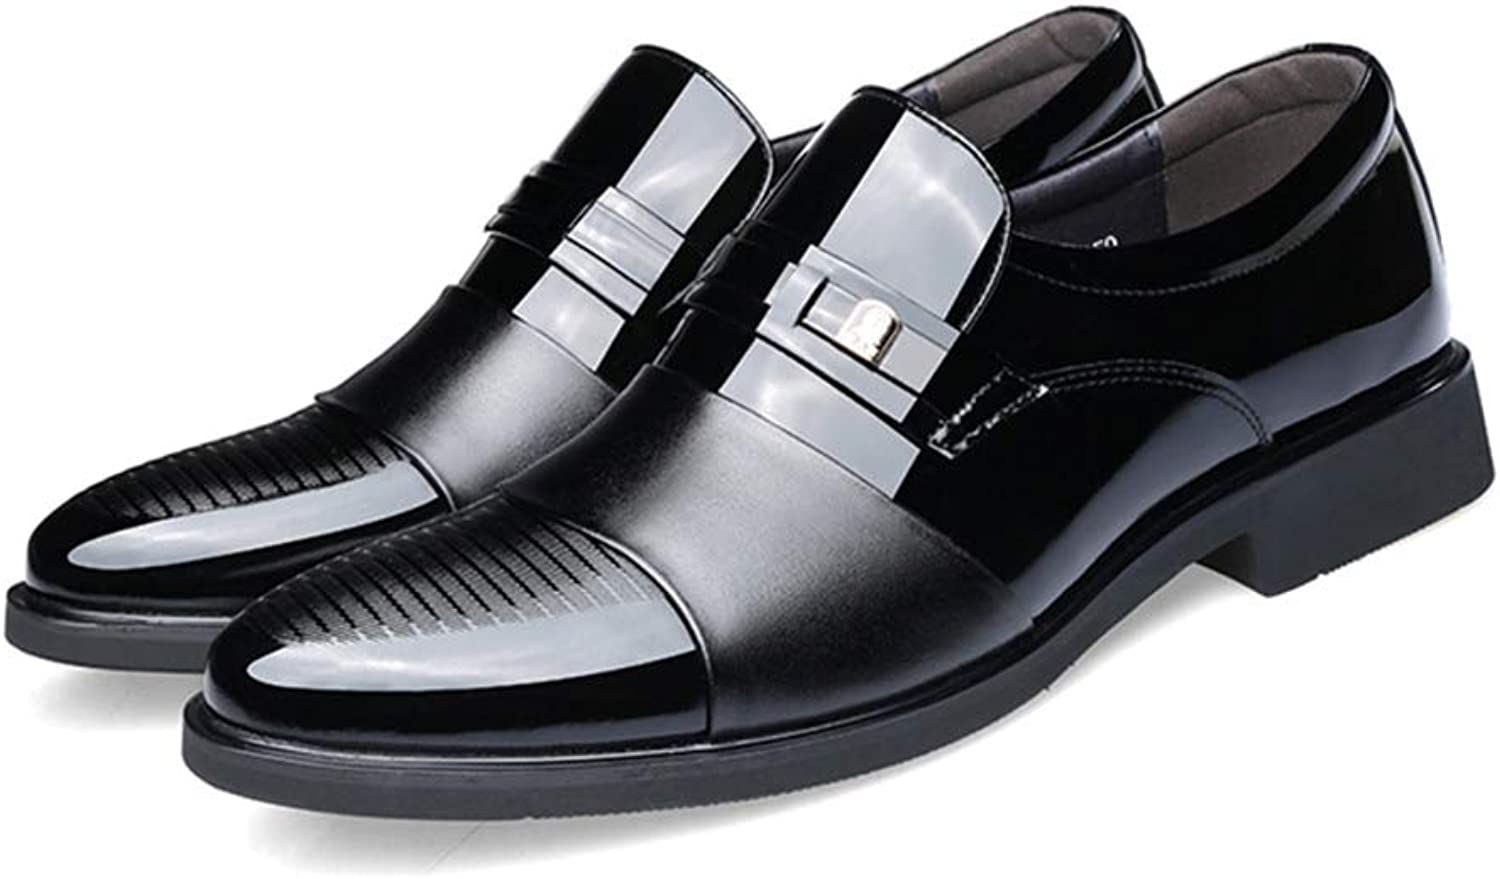 LUCKYHUNTER Men's Business Dress shoes Leather Pointed Wedding Dress shoes,Black-EU40